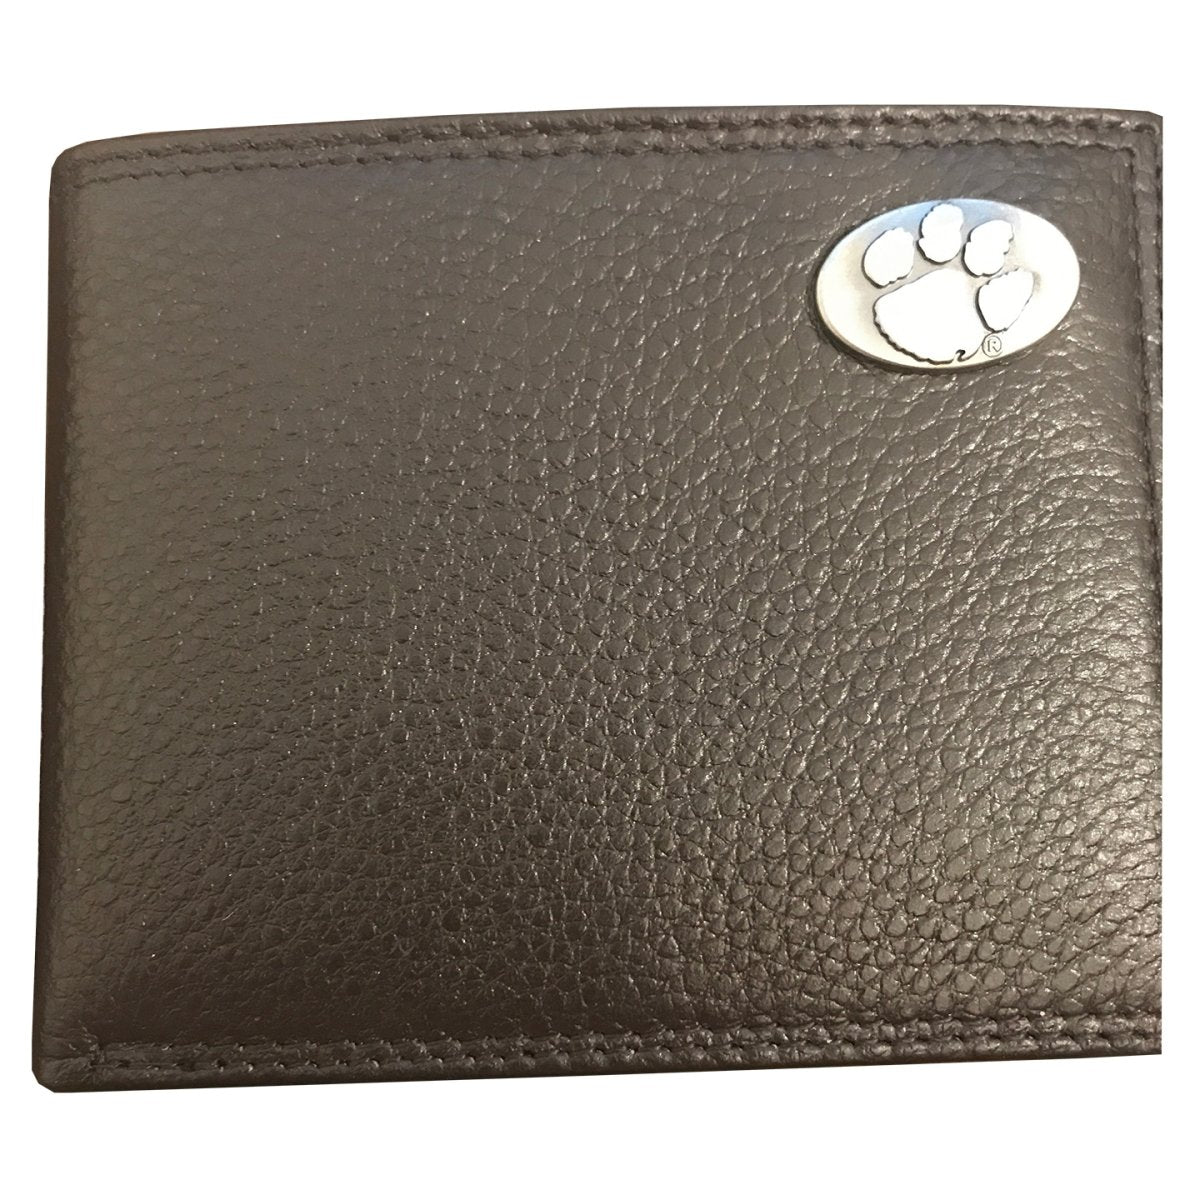 Clemson Tigers Brown Pebble Grain Passcase With Silver Paw Concho - Mr. Knickerbocker